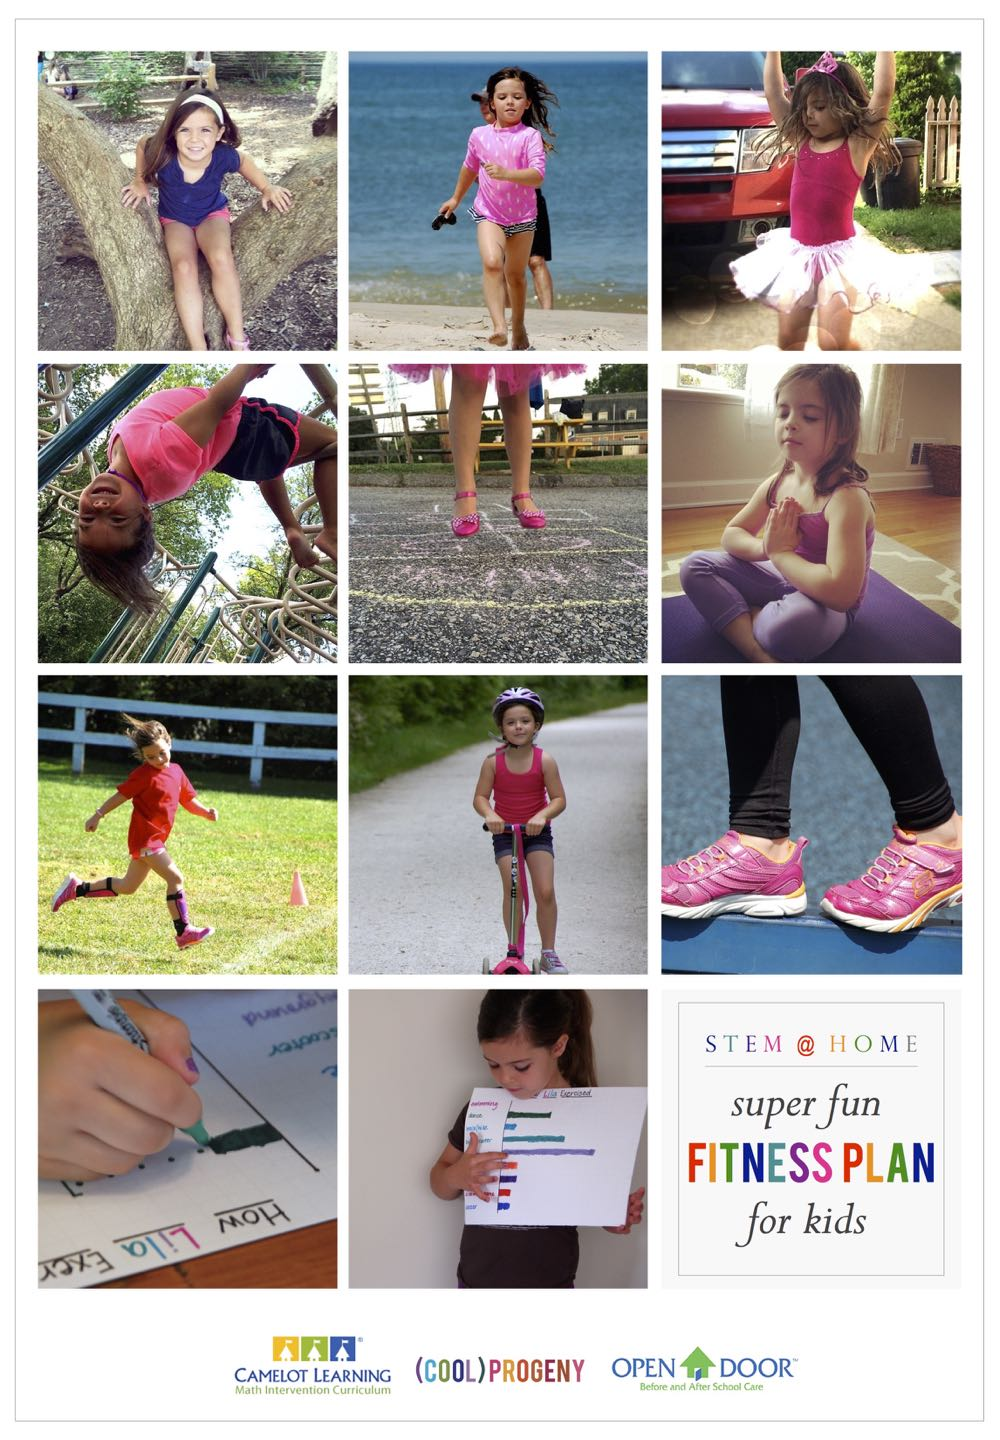 STEM @ HOME: Fun Fitness Plan for Kids! - (cool) progeny